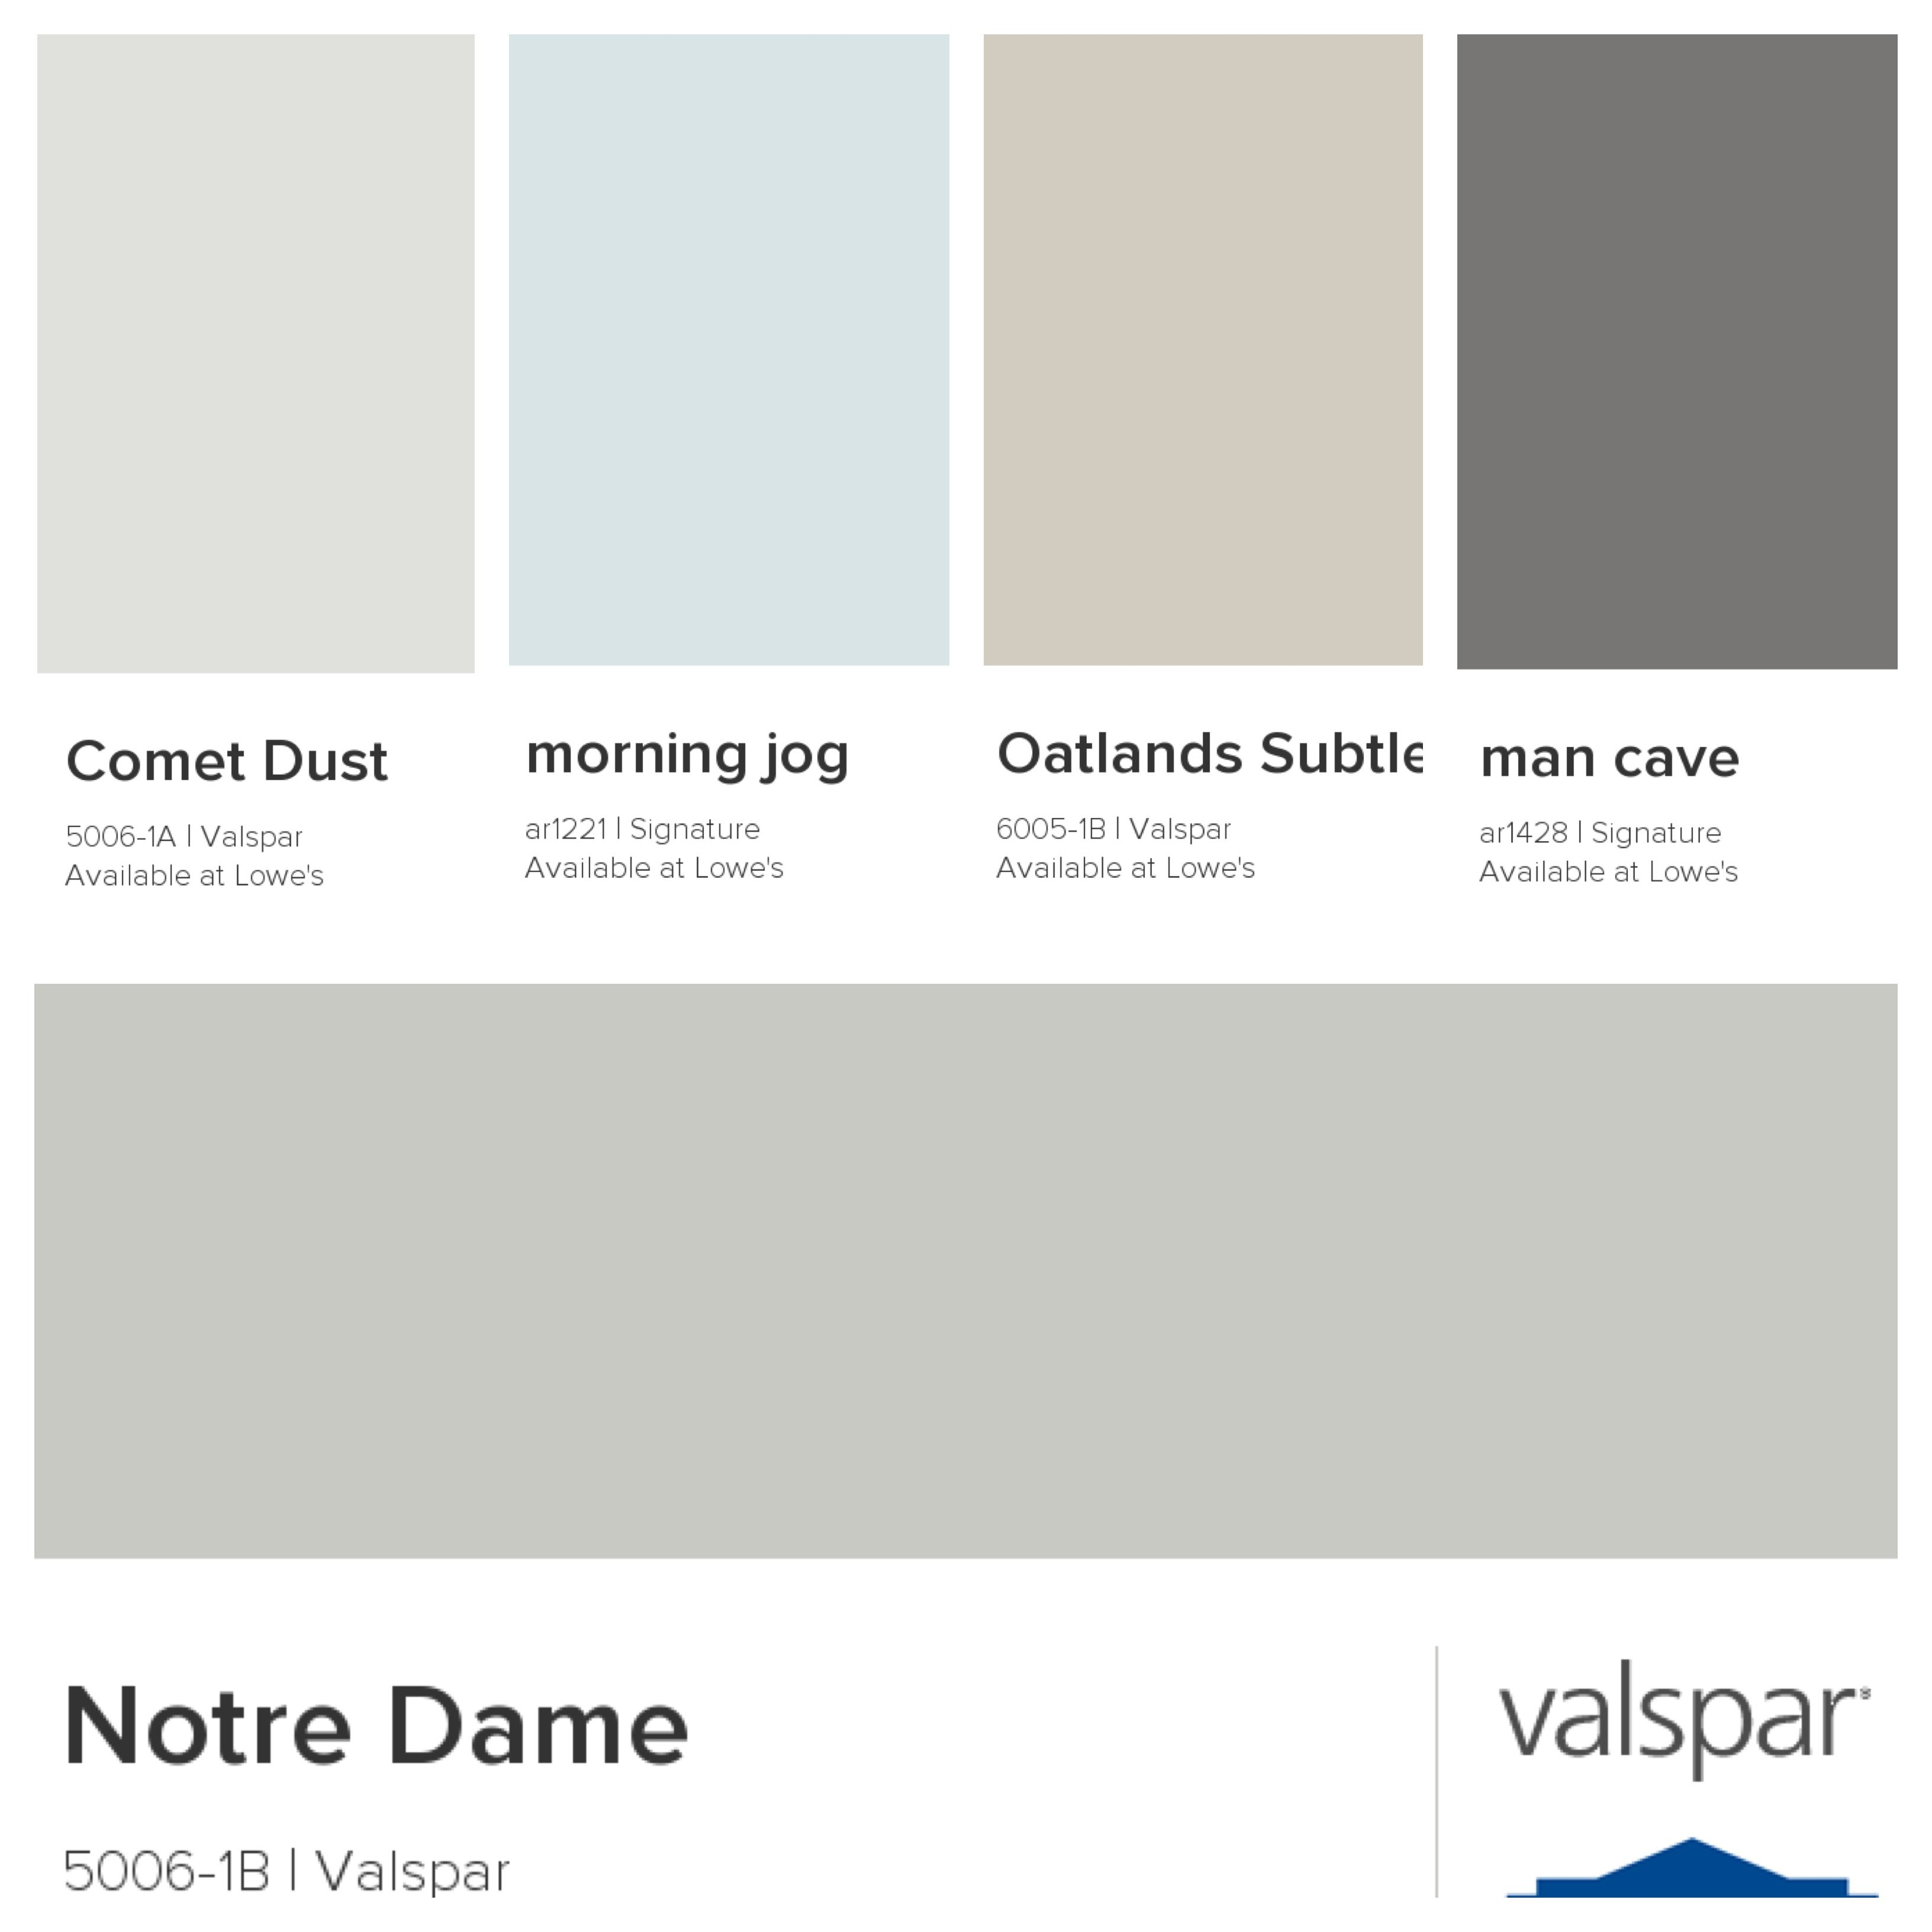 Notre Dame Living Room Main House Comet Dust Bedrooms Morning Jog Utility Oatlands Subtle Taupe Bathrooms Man Cave Office